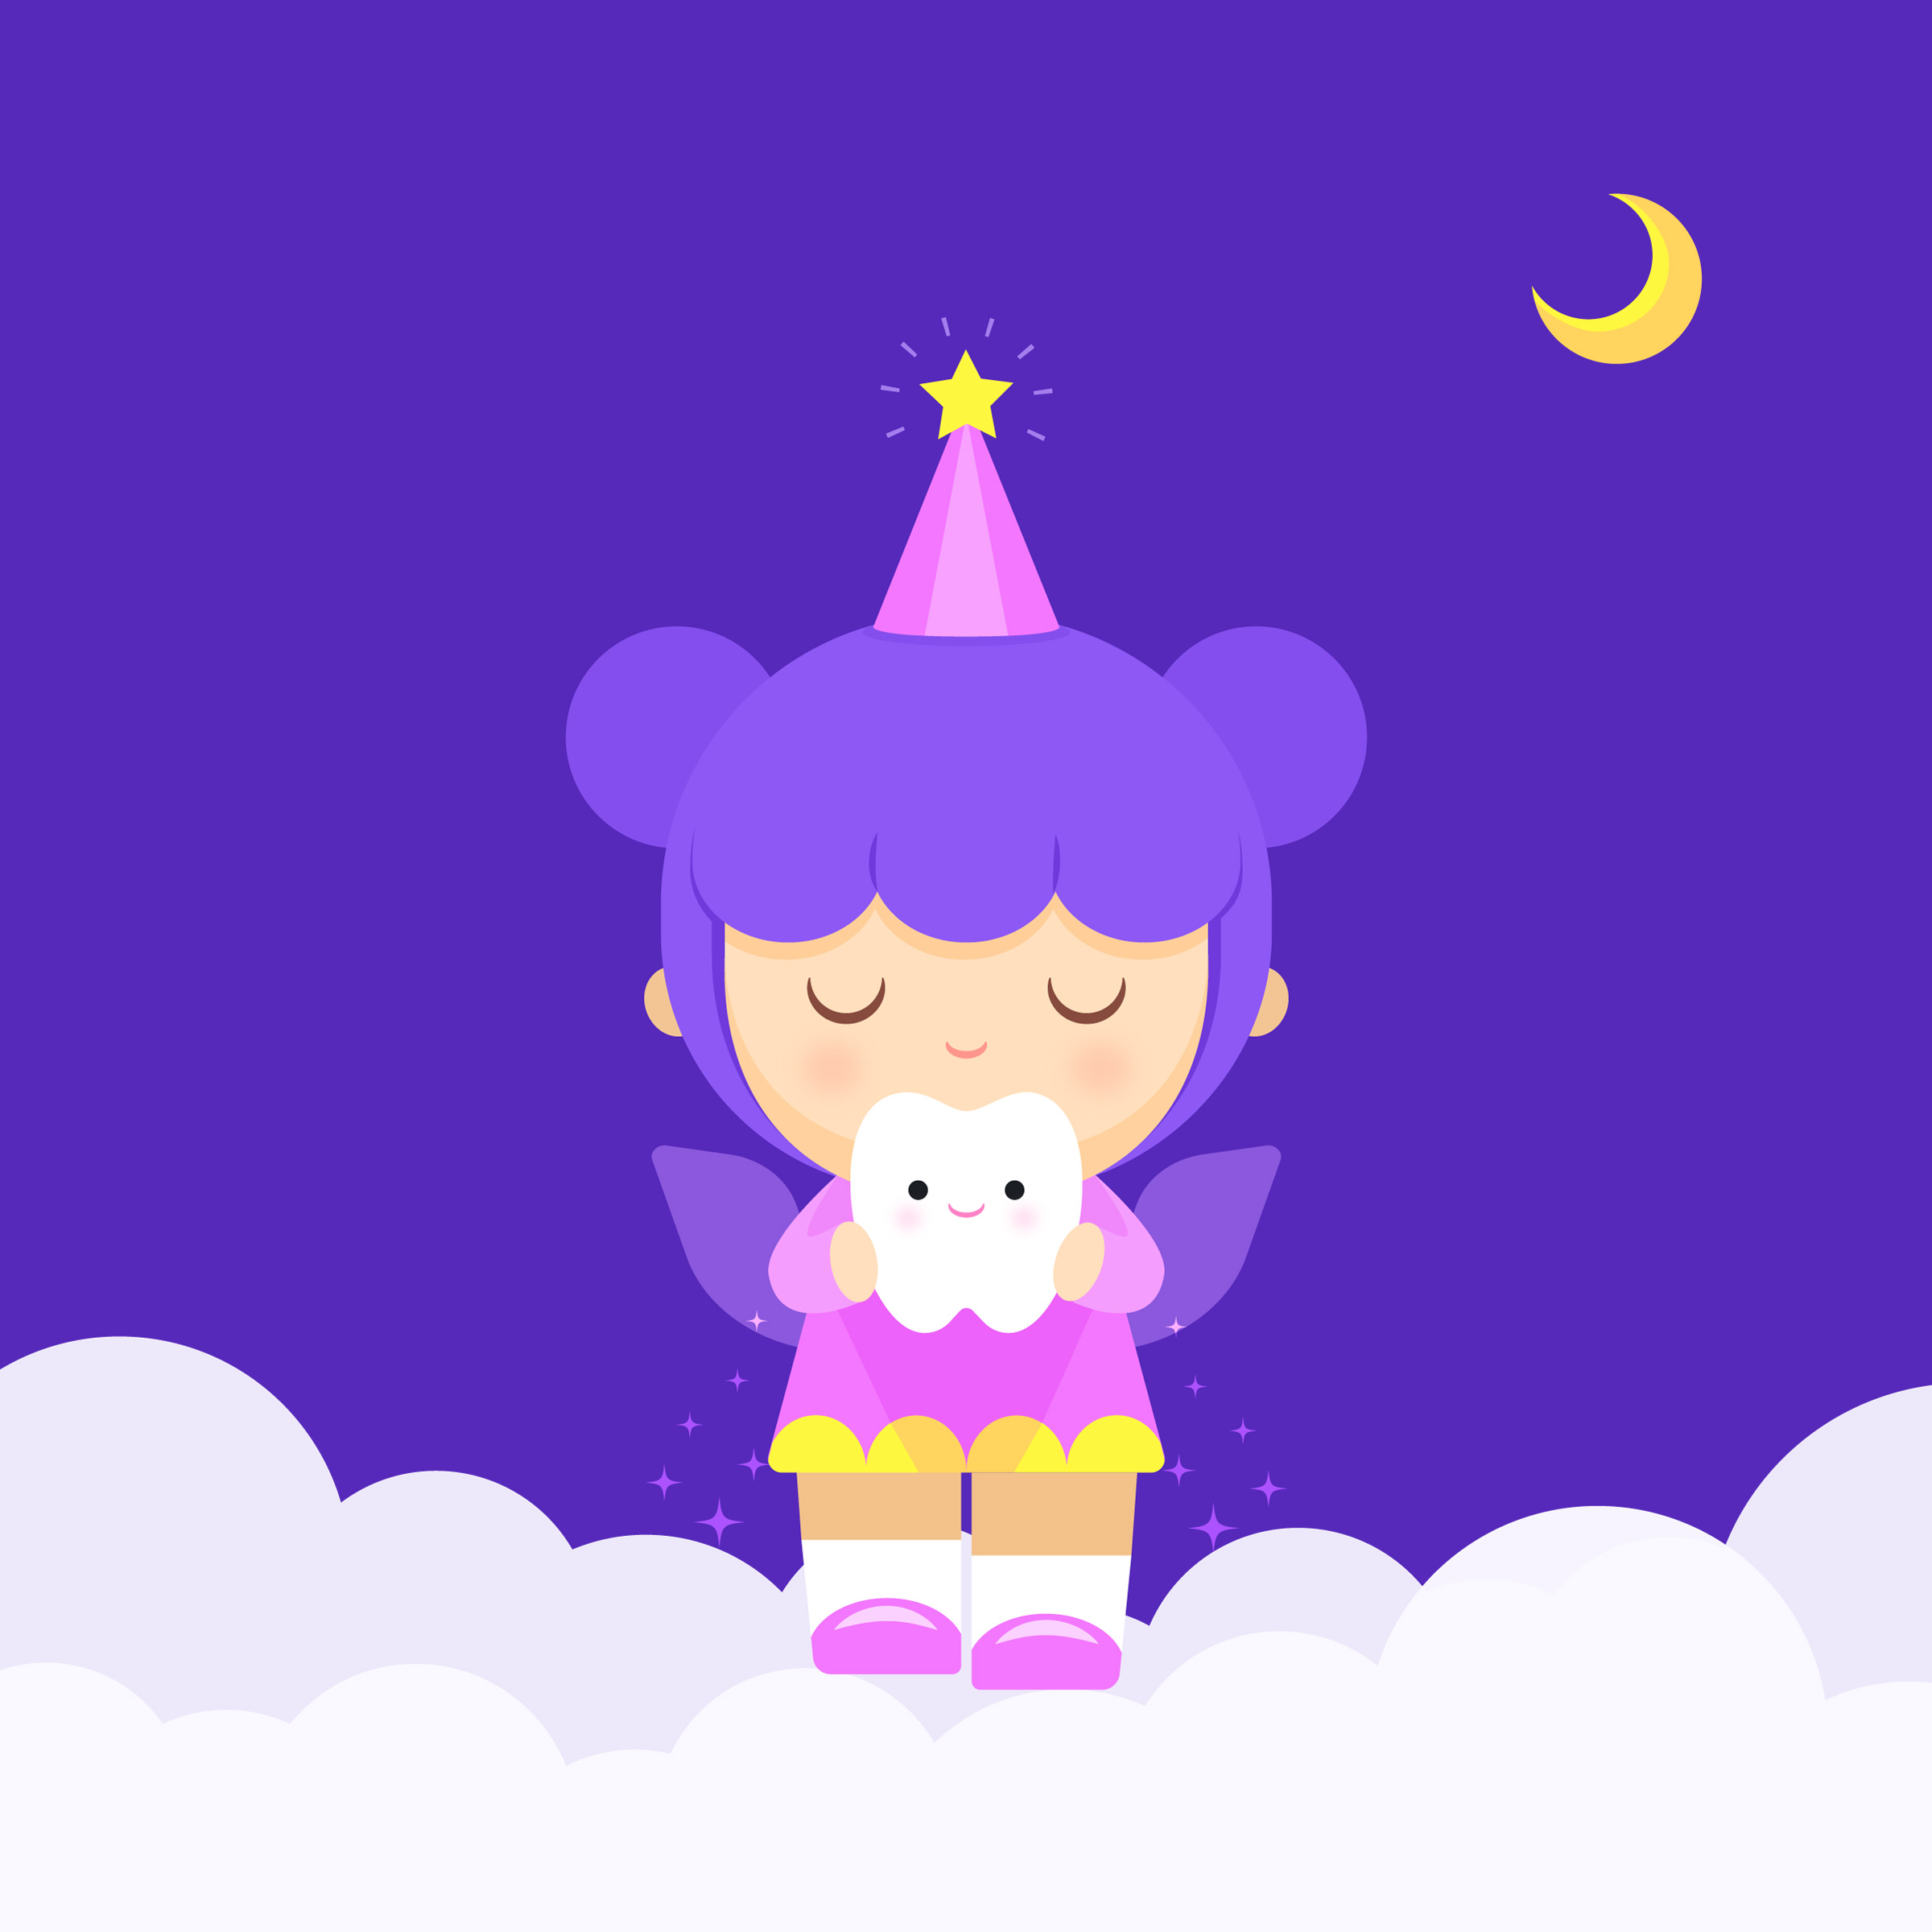 Tooth Fairy Free Vector Art - (90 Free Downloads)